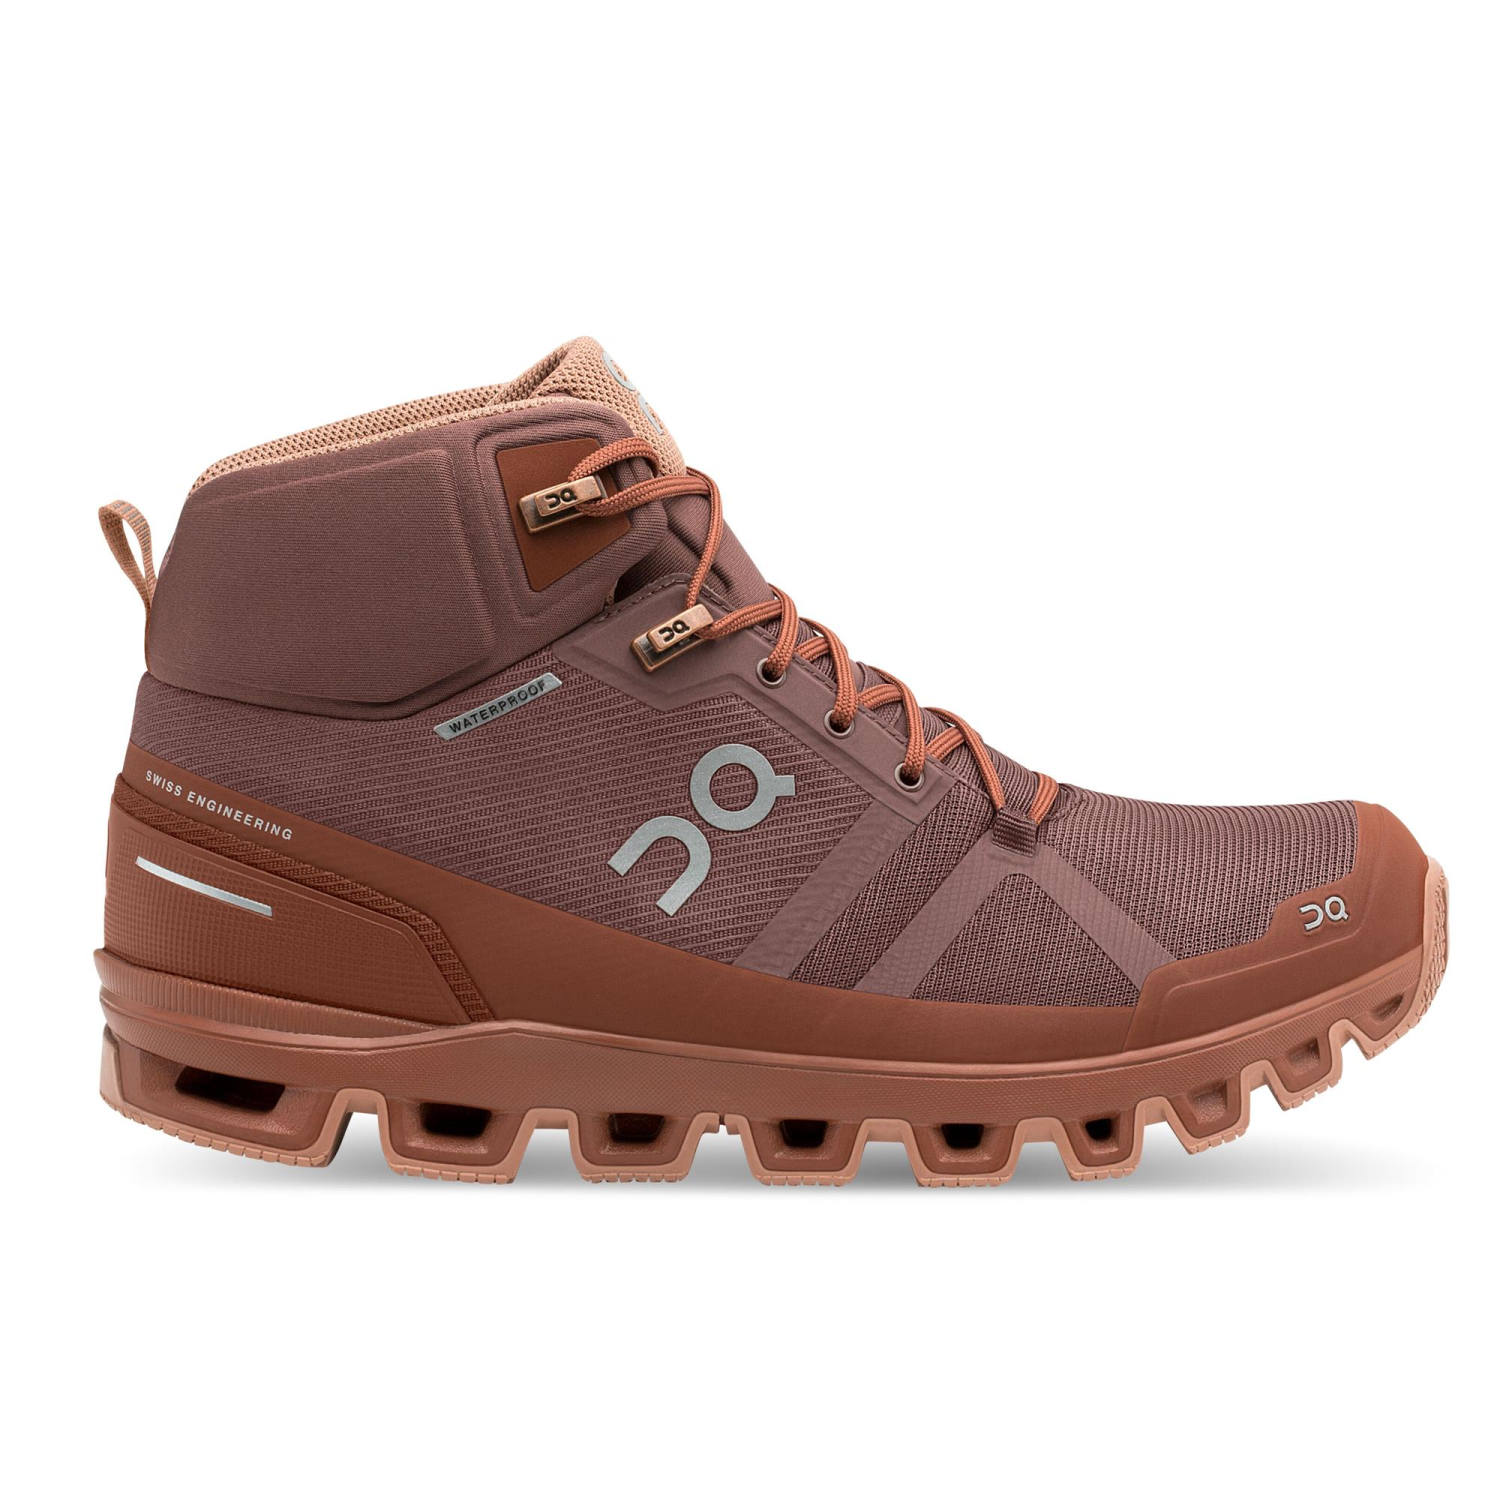 Damen Wanderschuhe On Cloudrock Waterproof braun